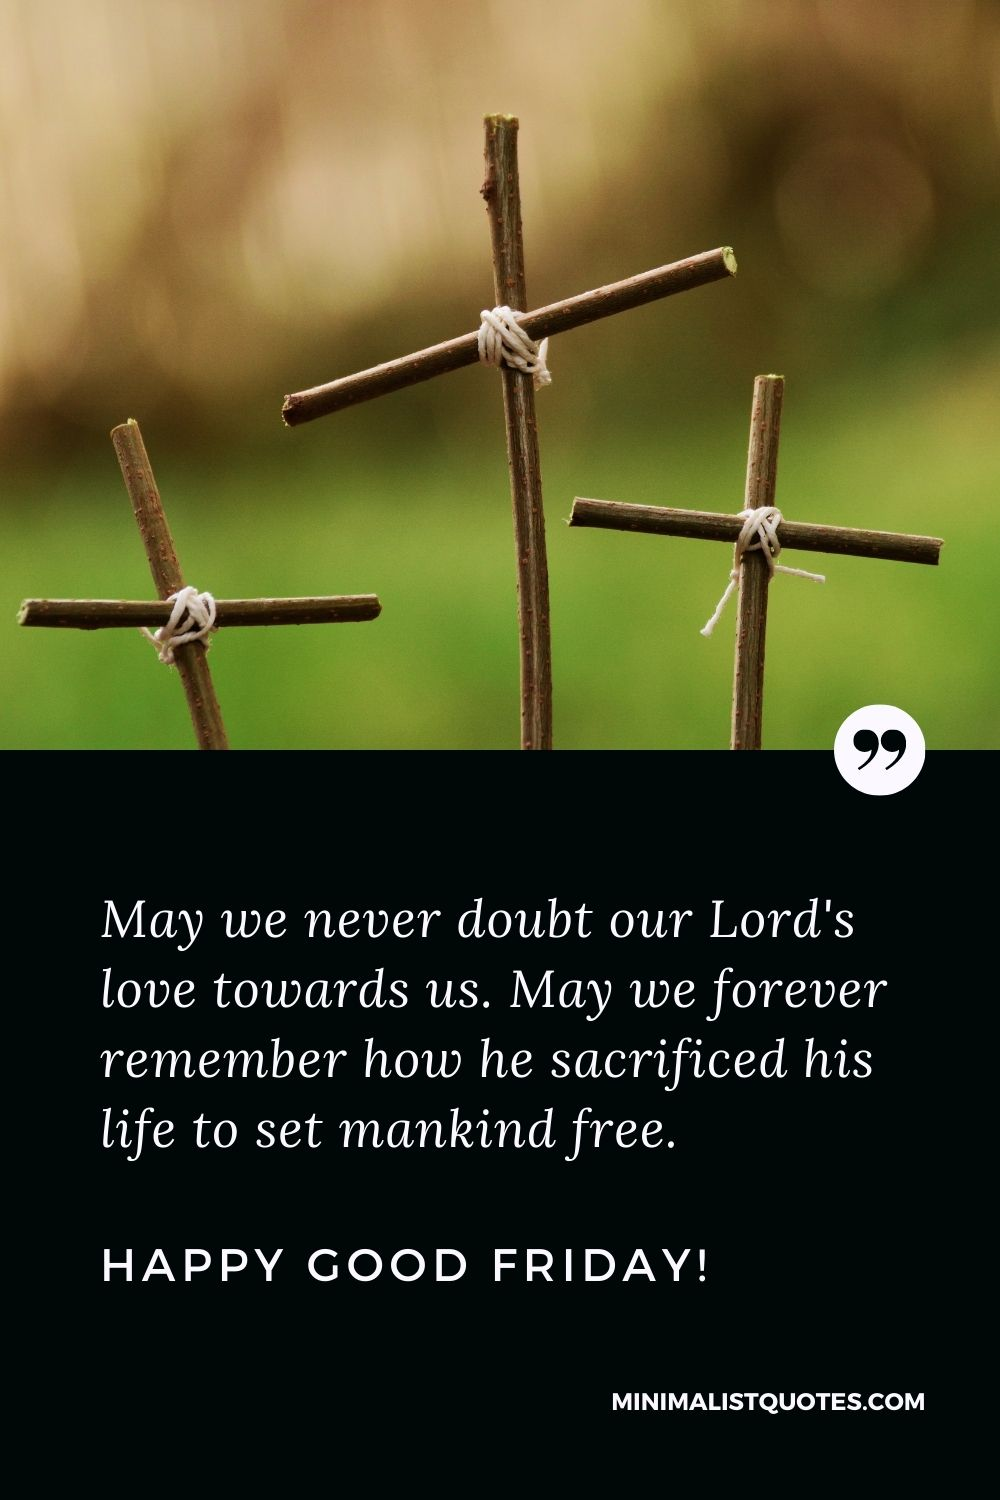 Good Friday quote, wish & message with image: May we never doubt our Lord's love towards us. May we forever remember how he sacrificed his life to set mankind free. Happy Good Friday!